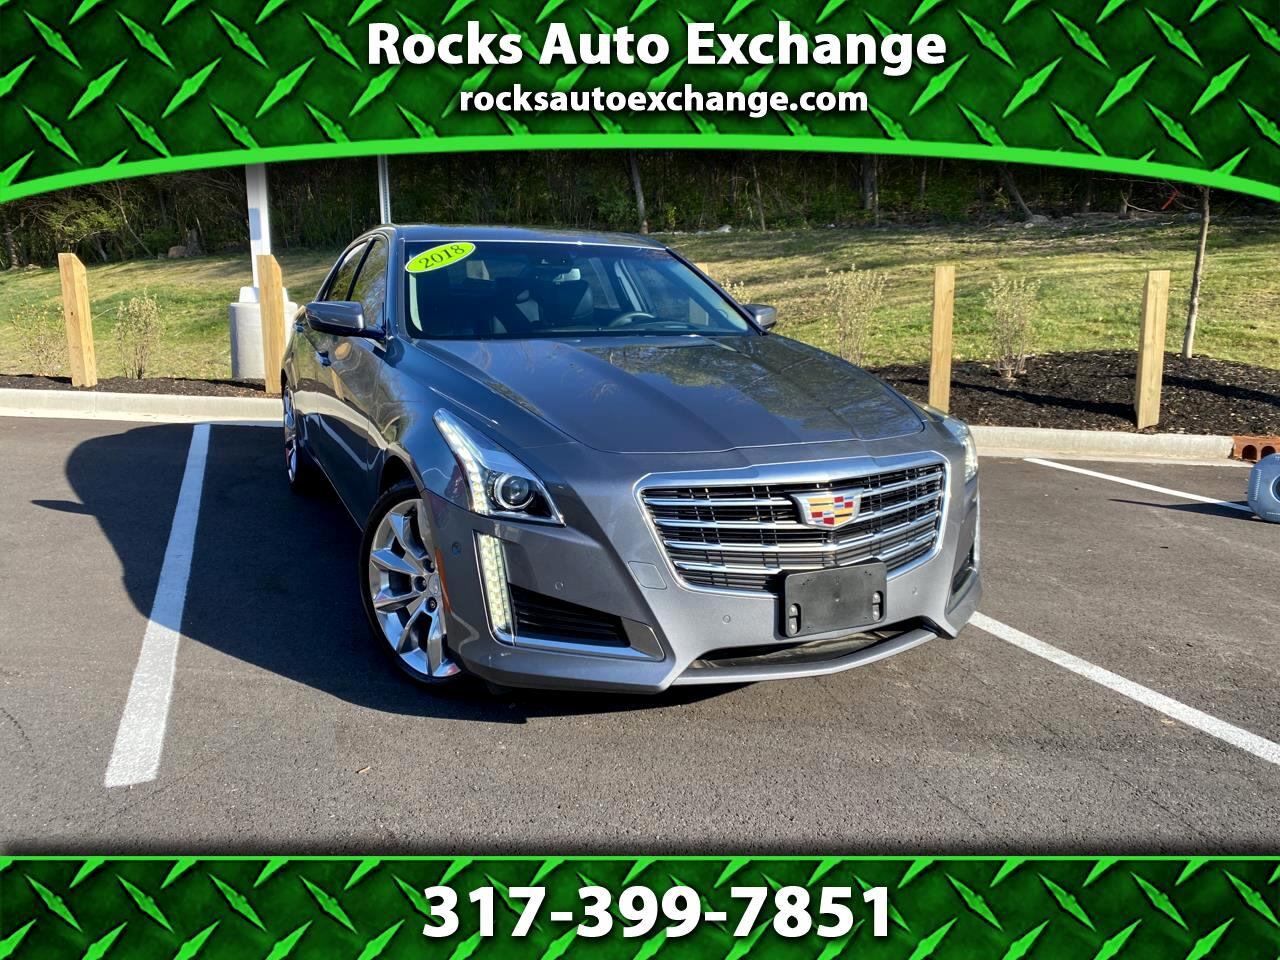 Cadillac CTS Sedan 4dr Sdn 3.6L Premium Luxury AWD 2018